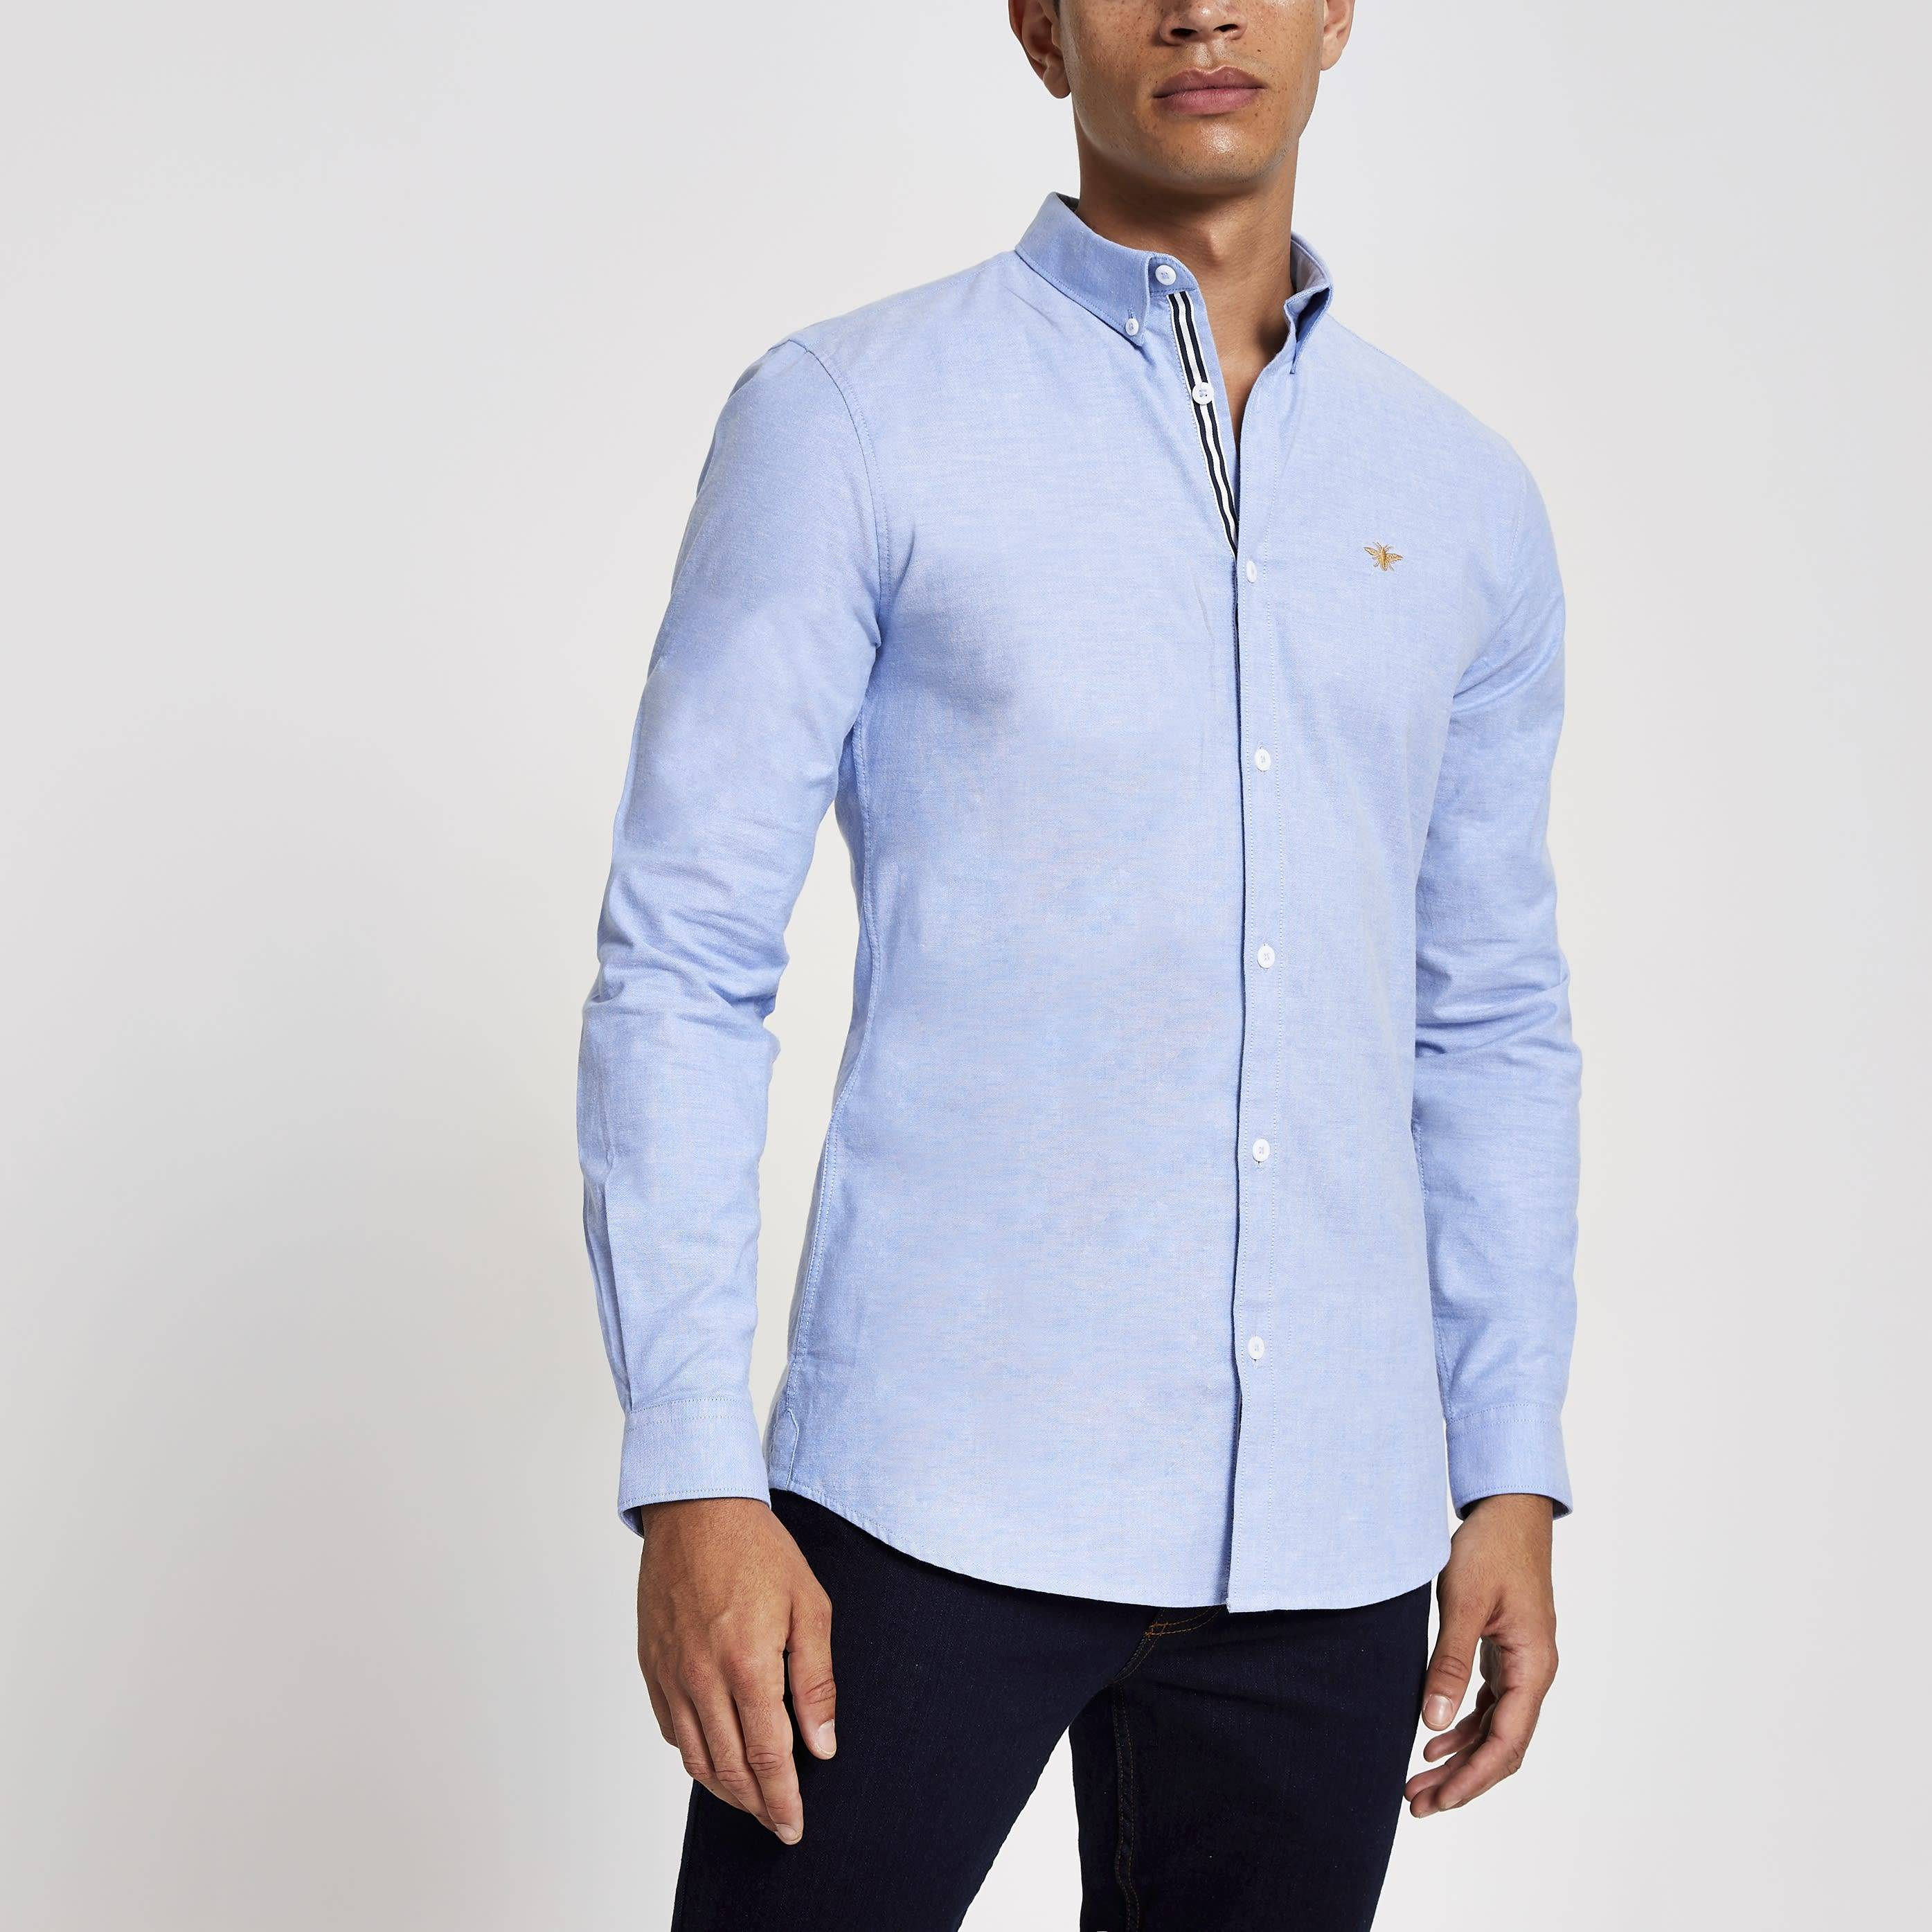 River Island Mens Blue embroidered long sleeve Oxford shirt (XS)